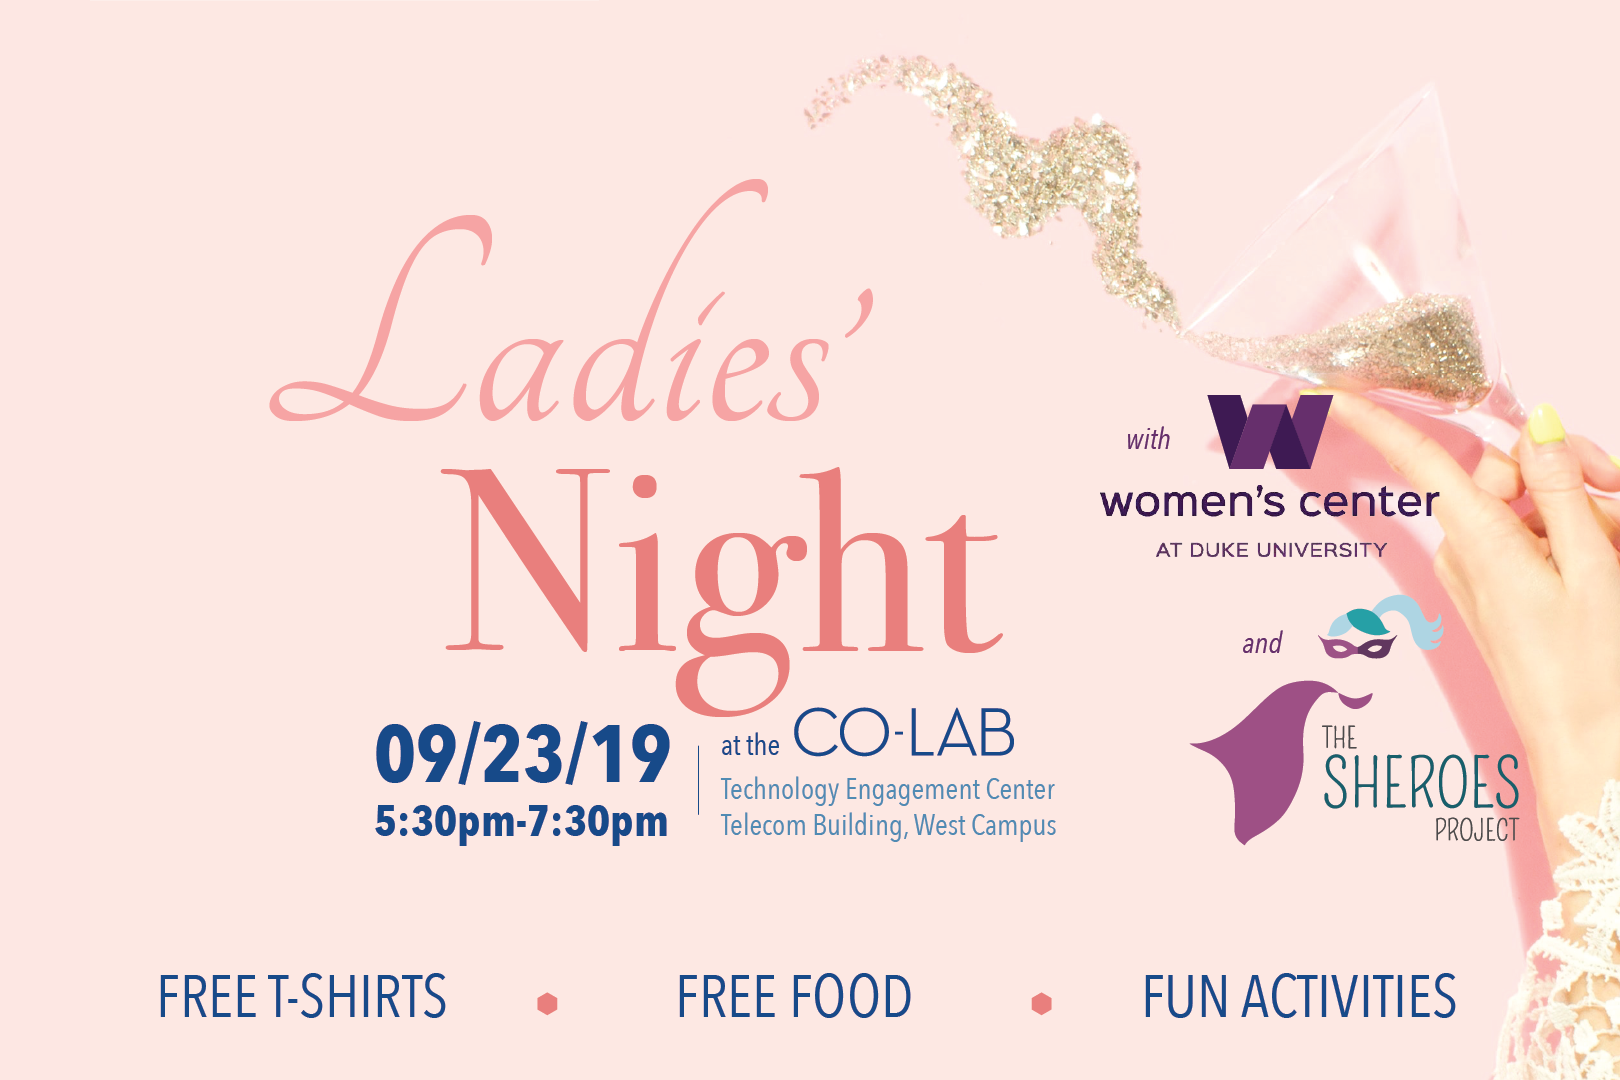 Ladies Night at the Co-Lab - 09/23